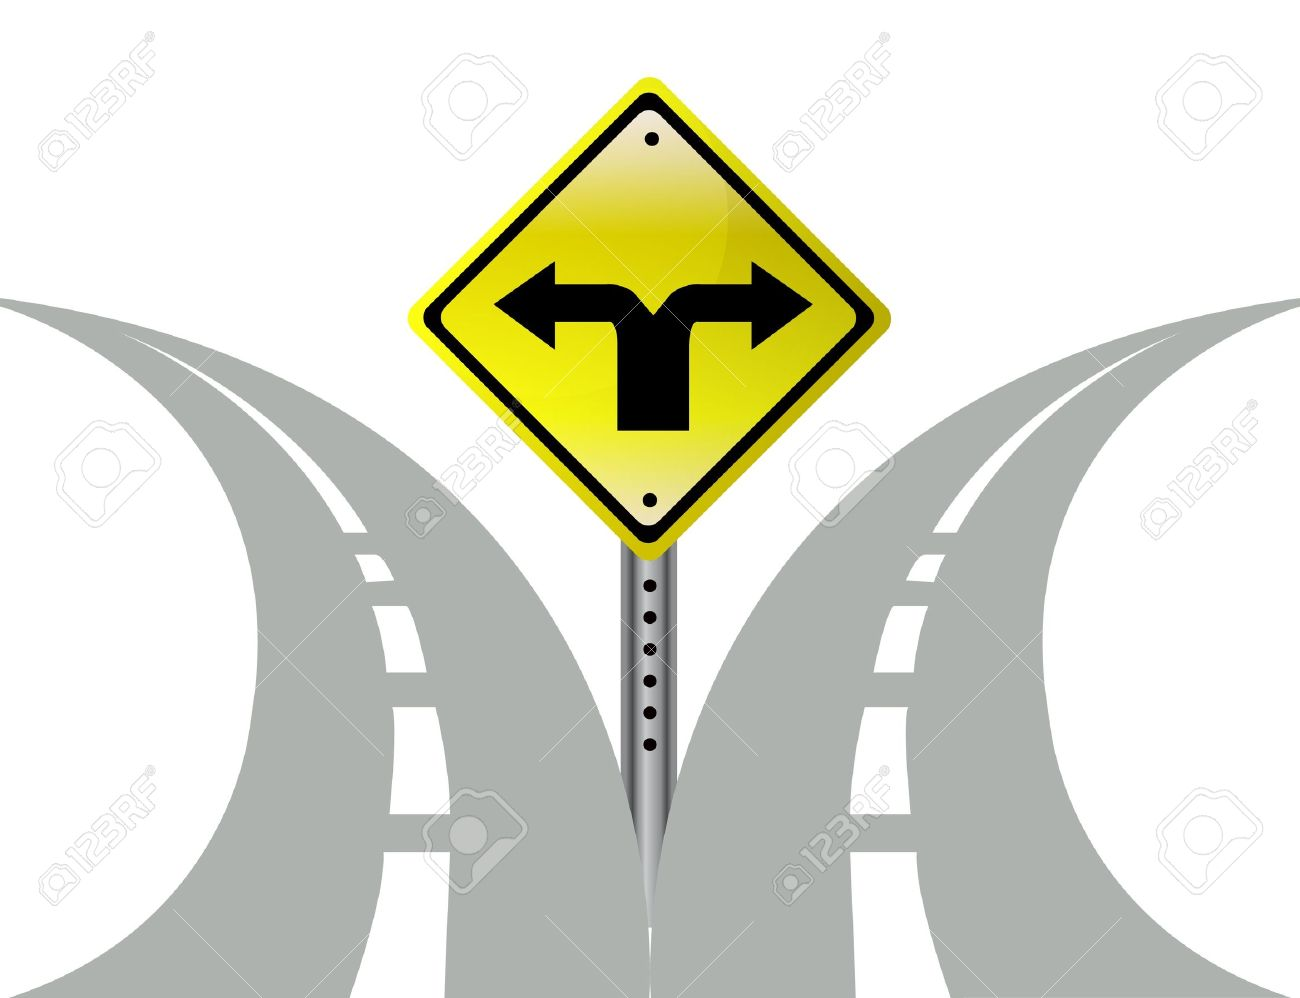 Roadway pencil and in. 2 clipart pathway